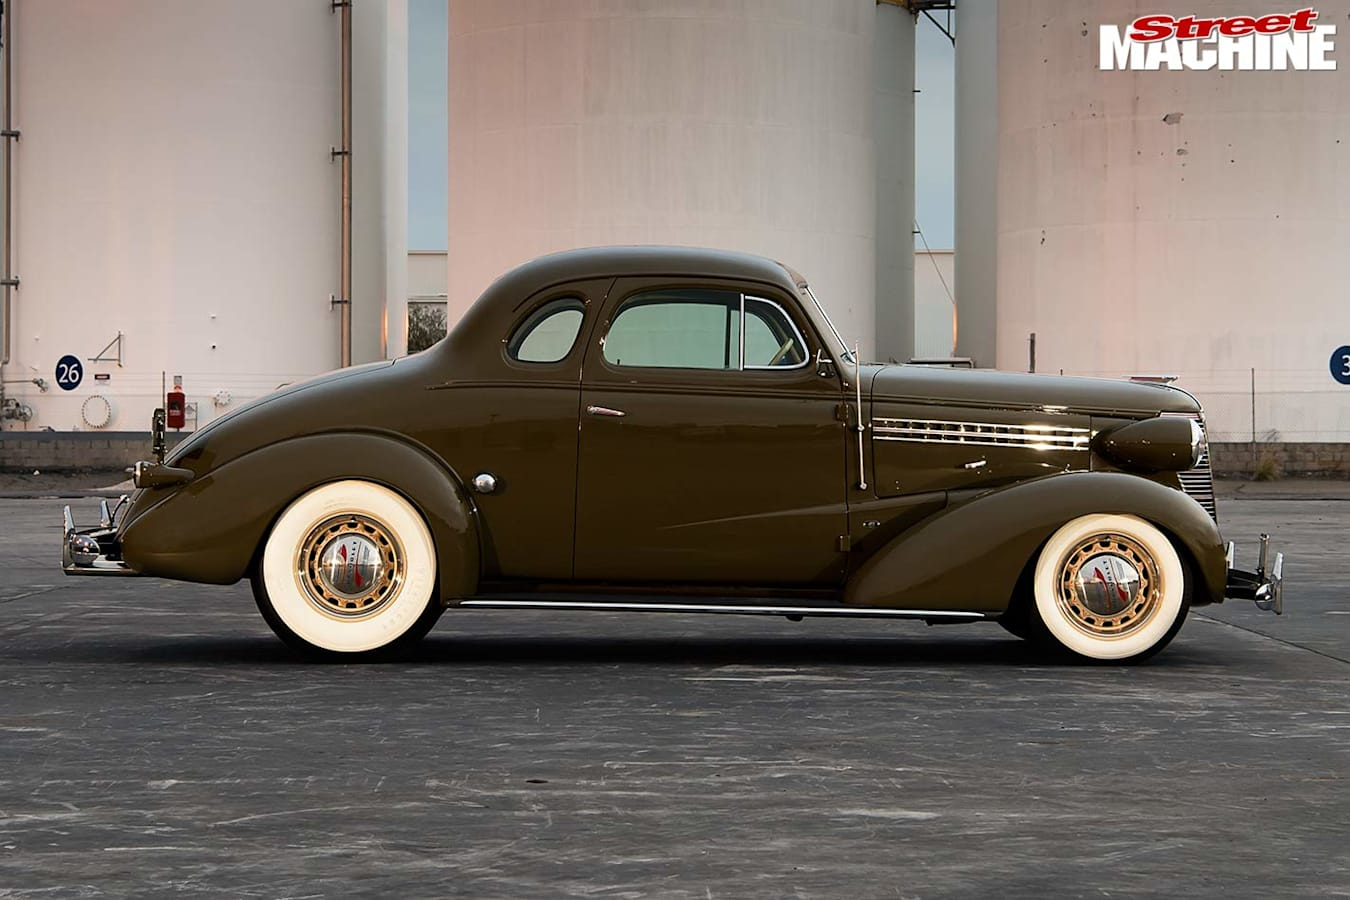 1938 Chev coupe side